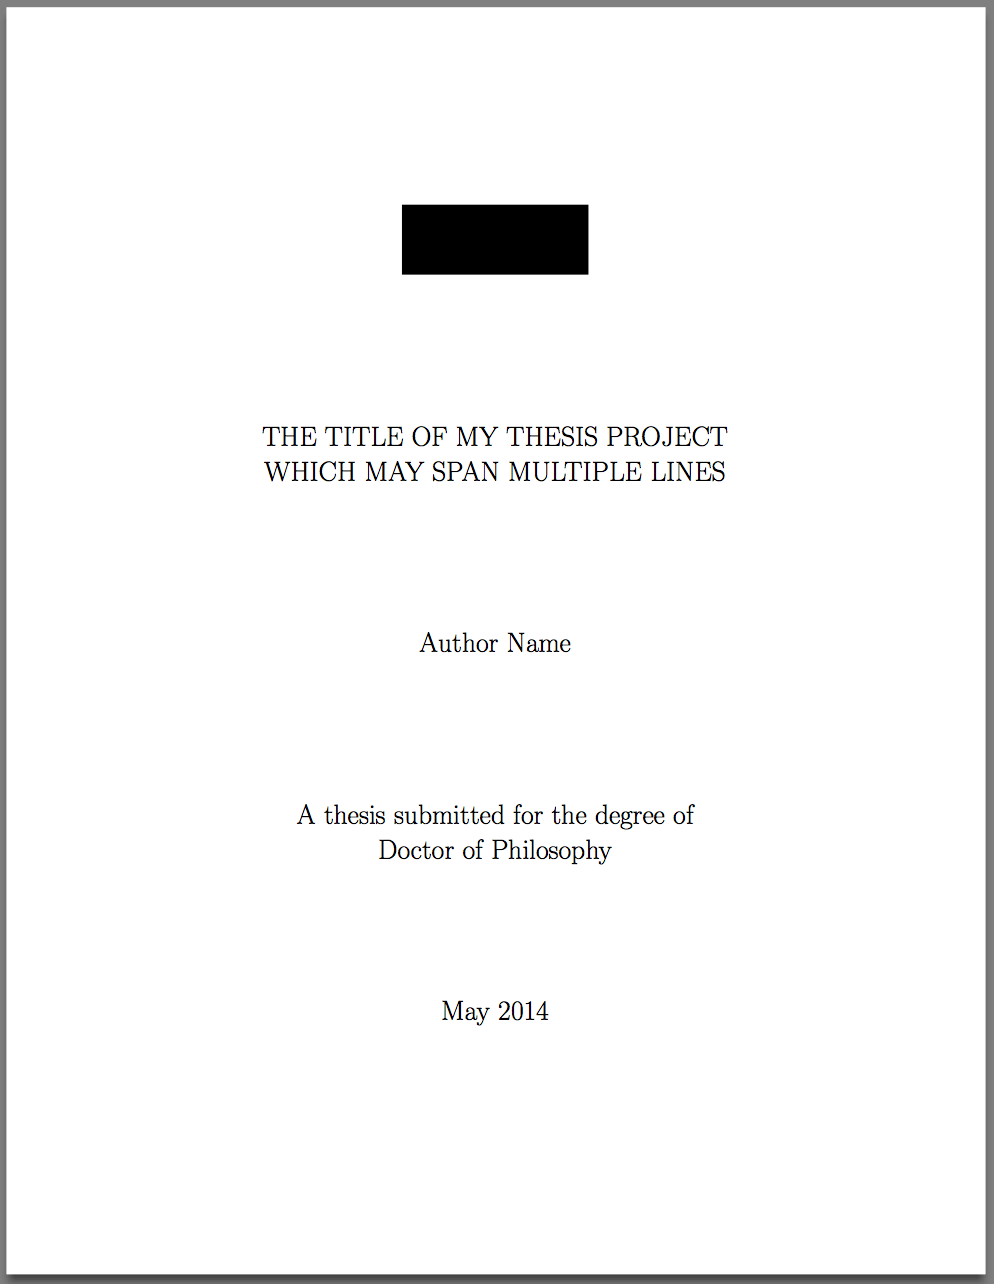 University of Bristol Thesis Template